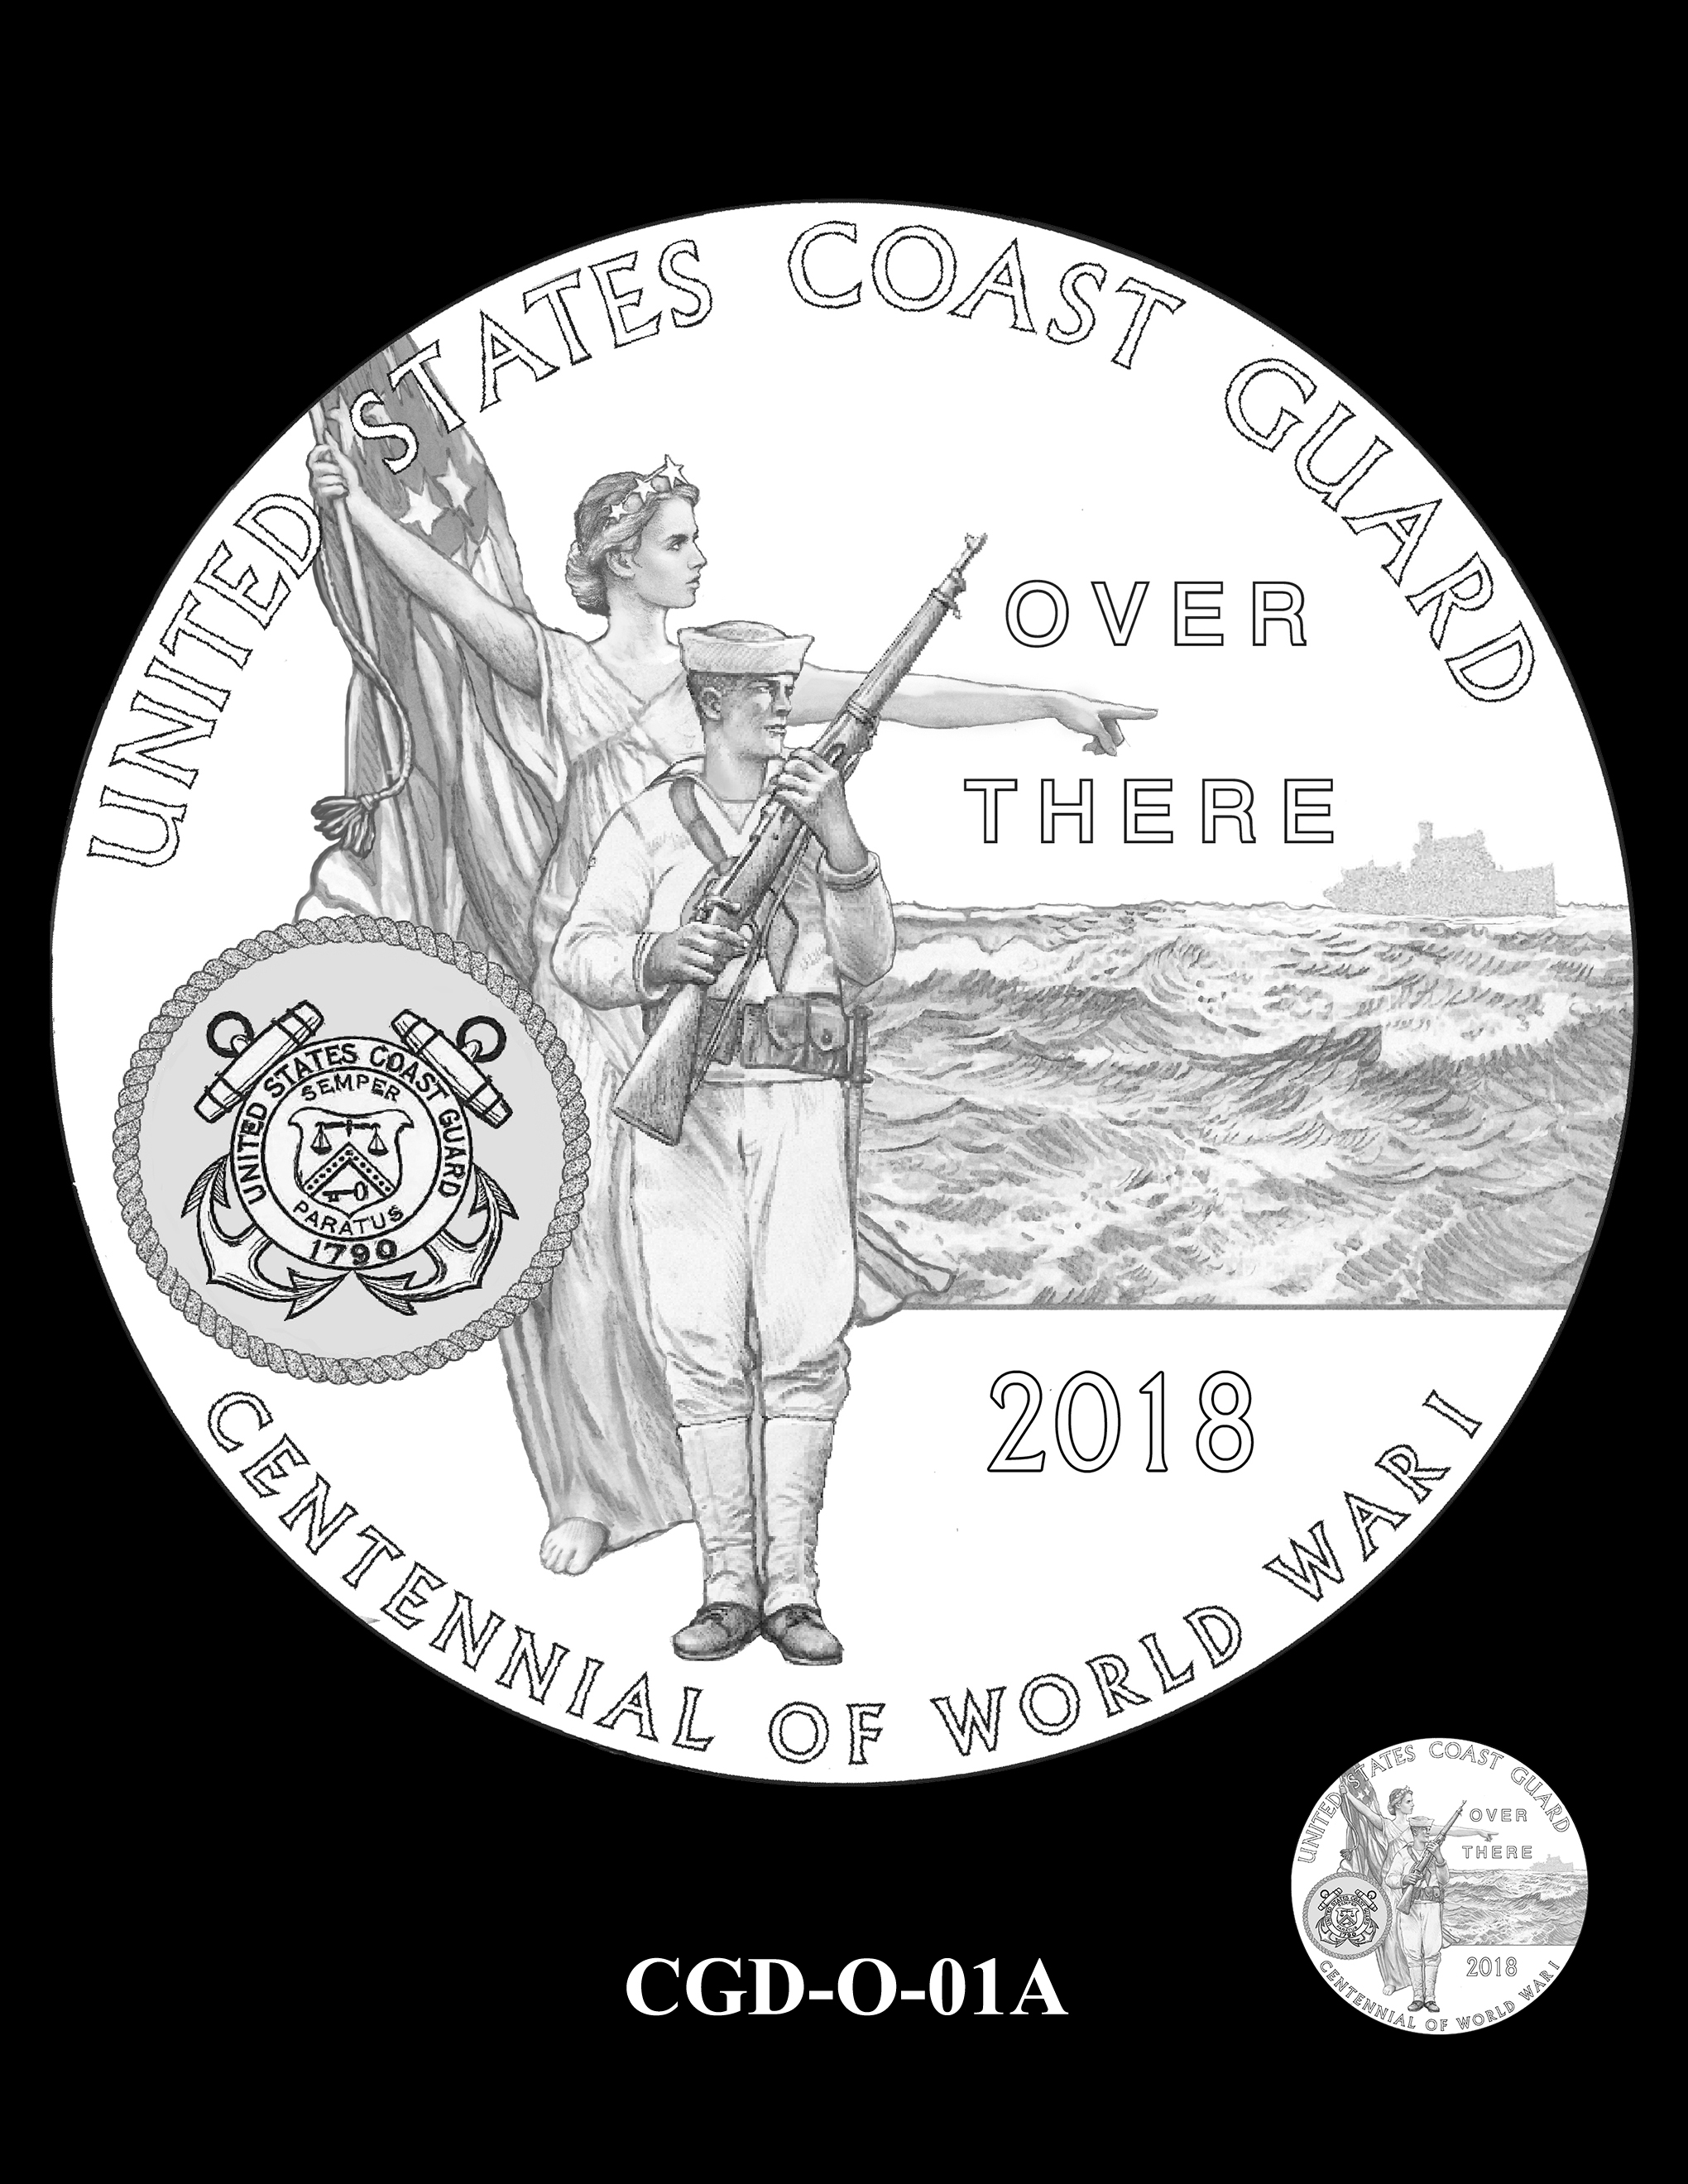 P1a-CGD-O-01A -- 2018-World War I Silver Medals - Coast Guard